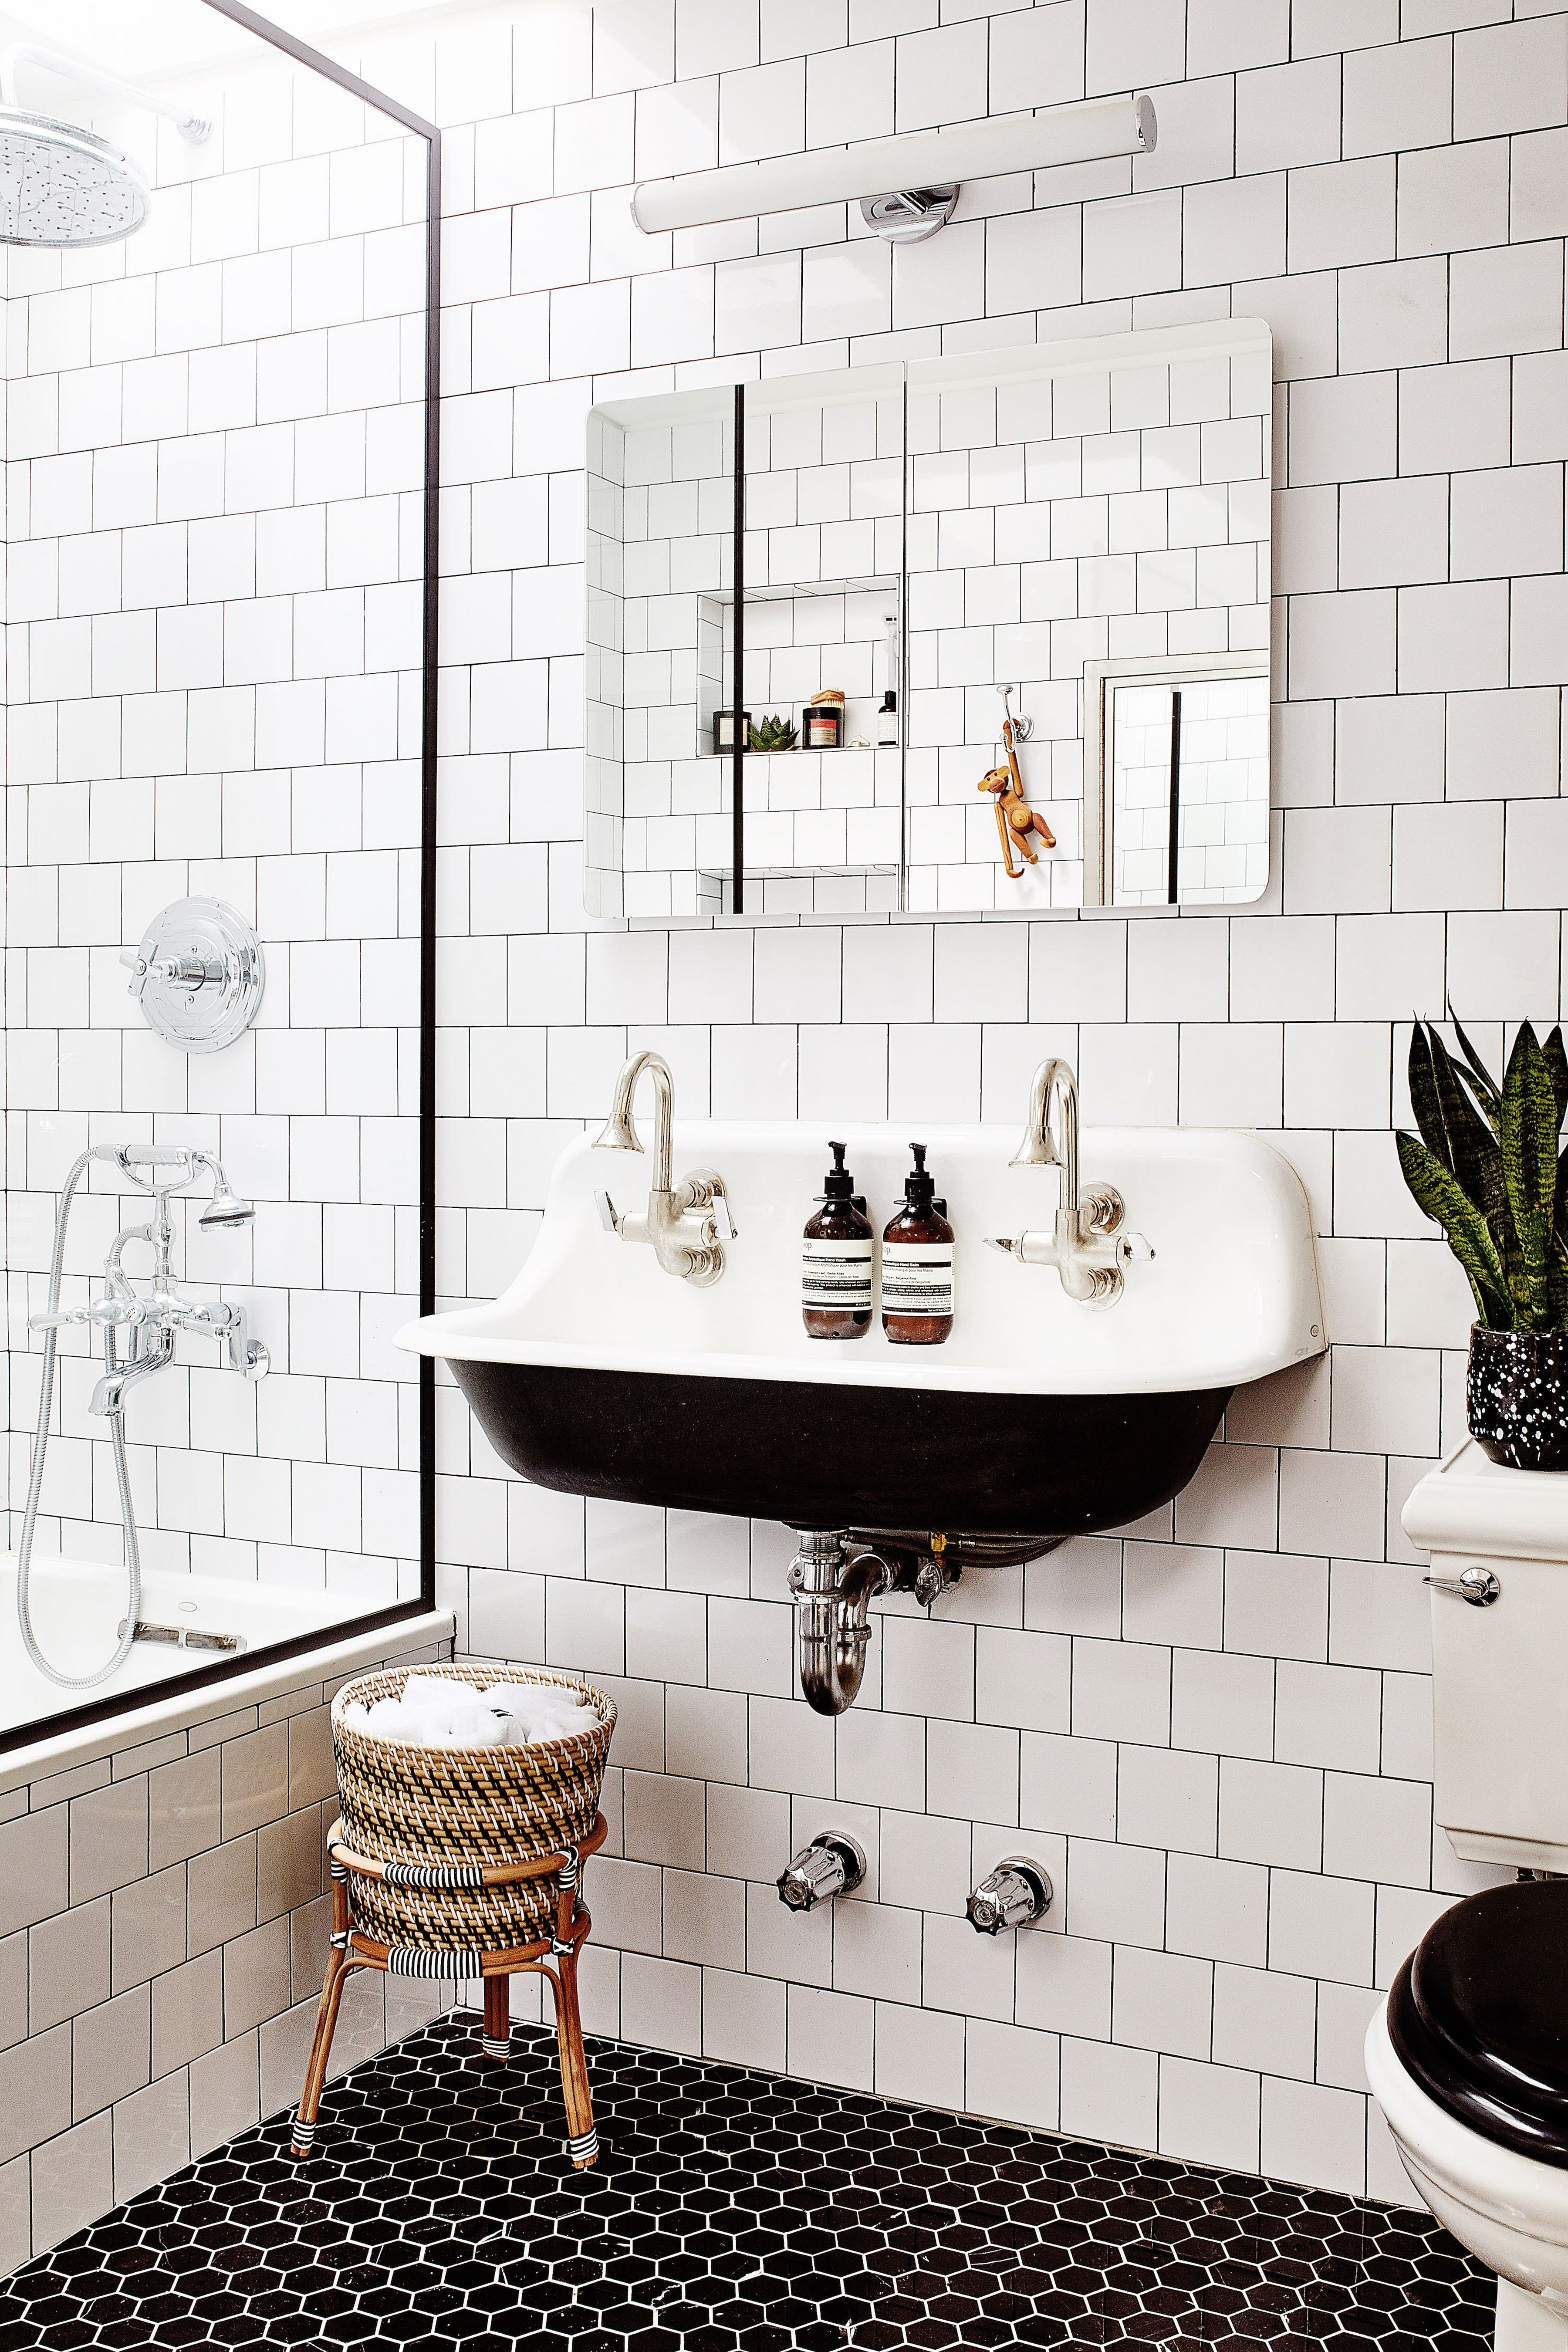 70 Master Bathroom Remodeling For Man and Woman Home Decor 59